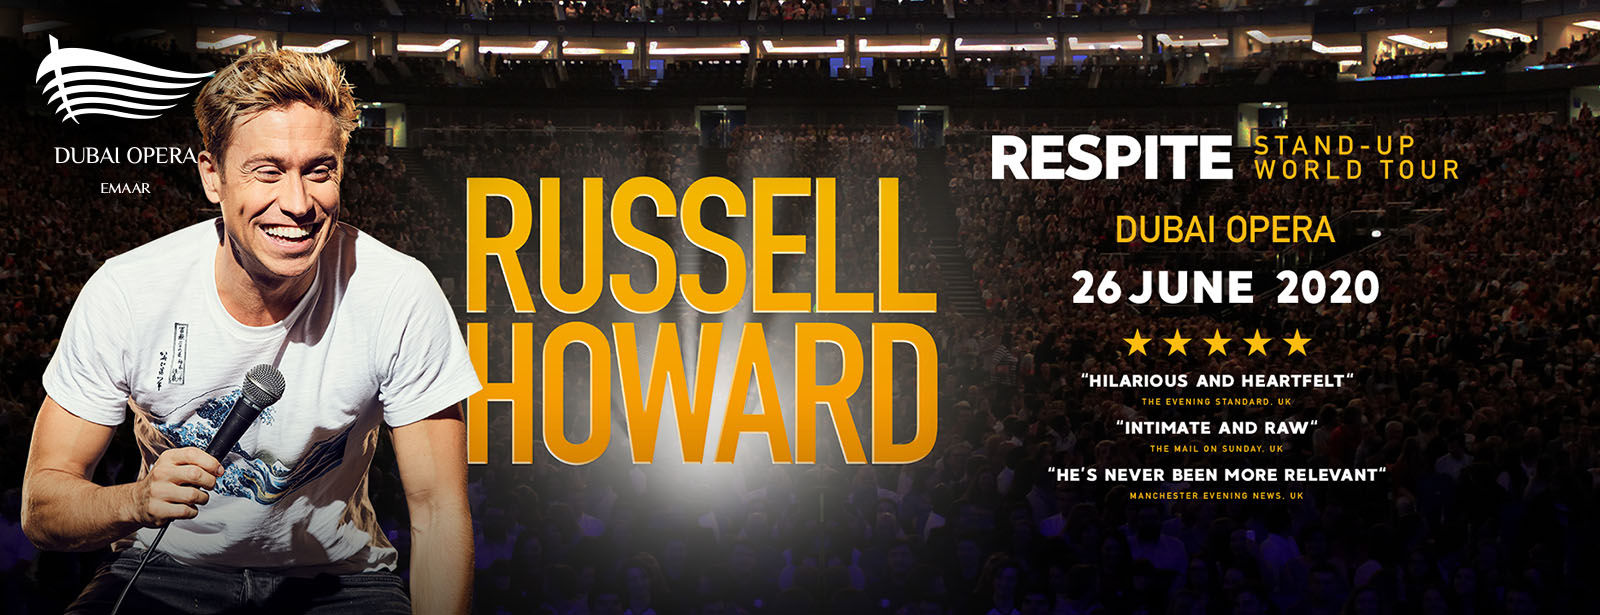 Russell Howard Live on Jun 27th at Dubai Opera 2020